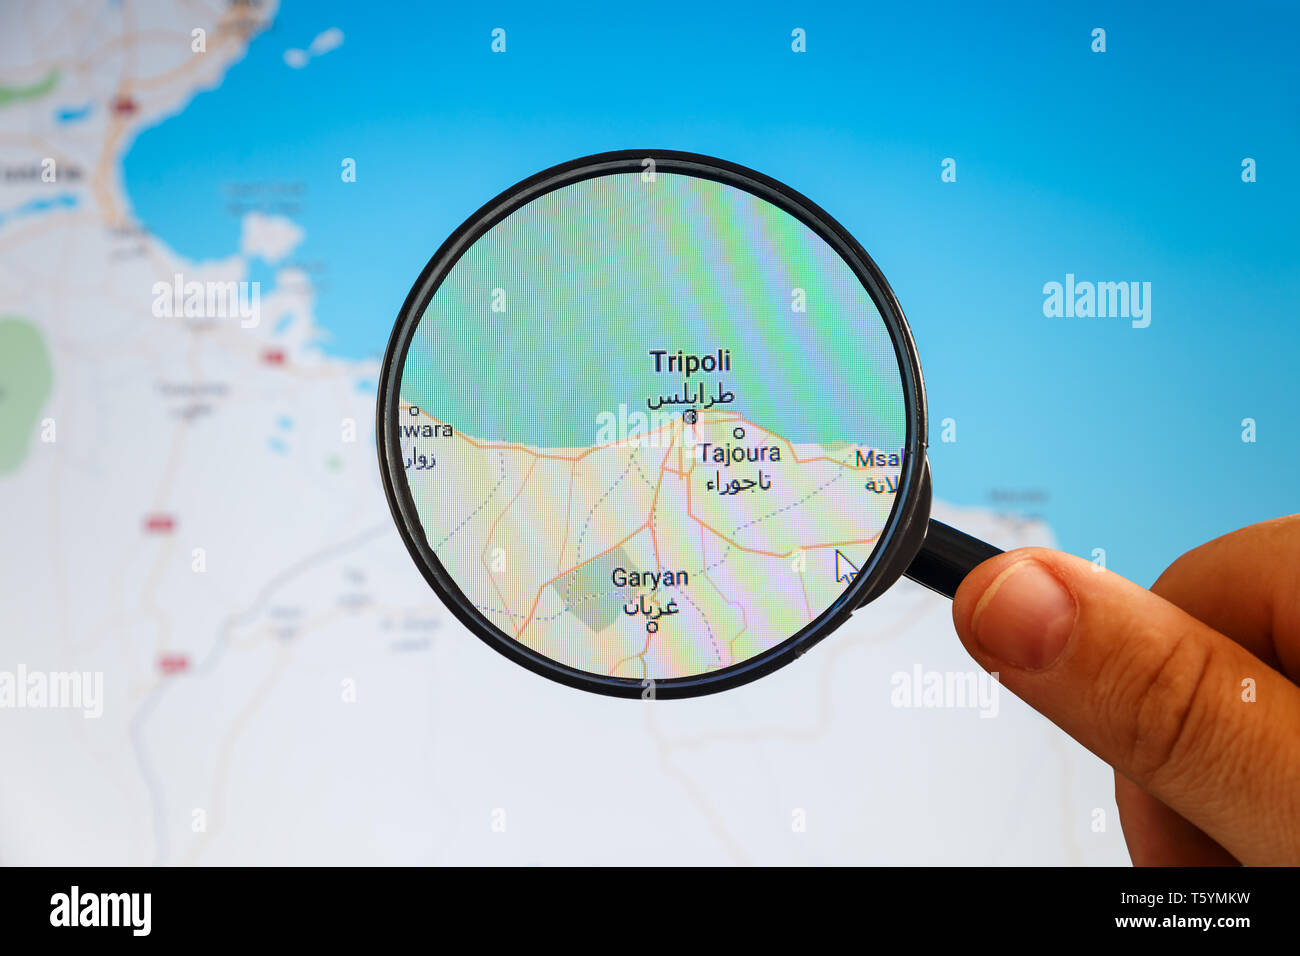 Picture of: Tripoli Libya Political Map City Visualization Illustrative Concept On Display Screen Through Magnifying Glass In The Hand Stock Photo Alamy